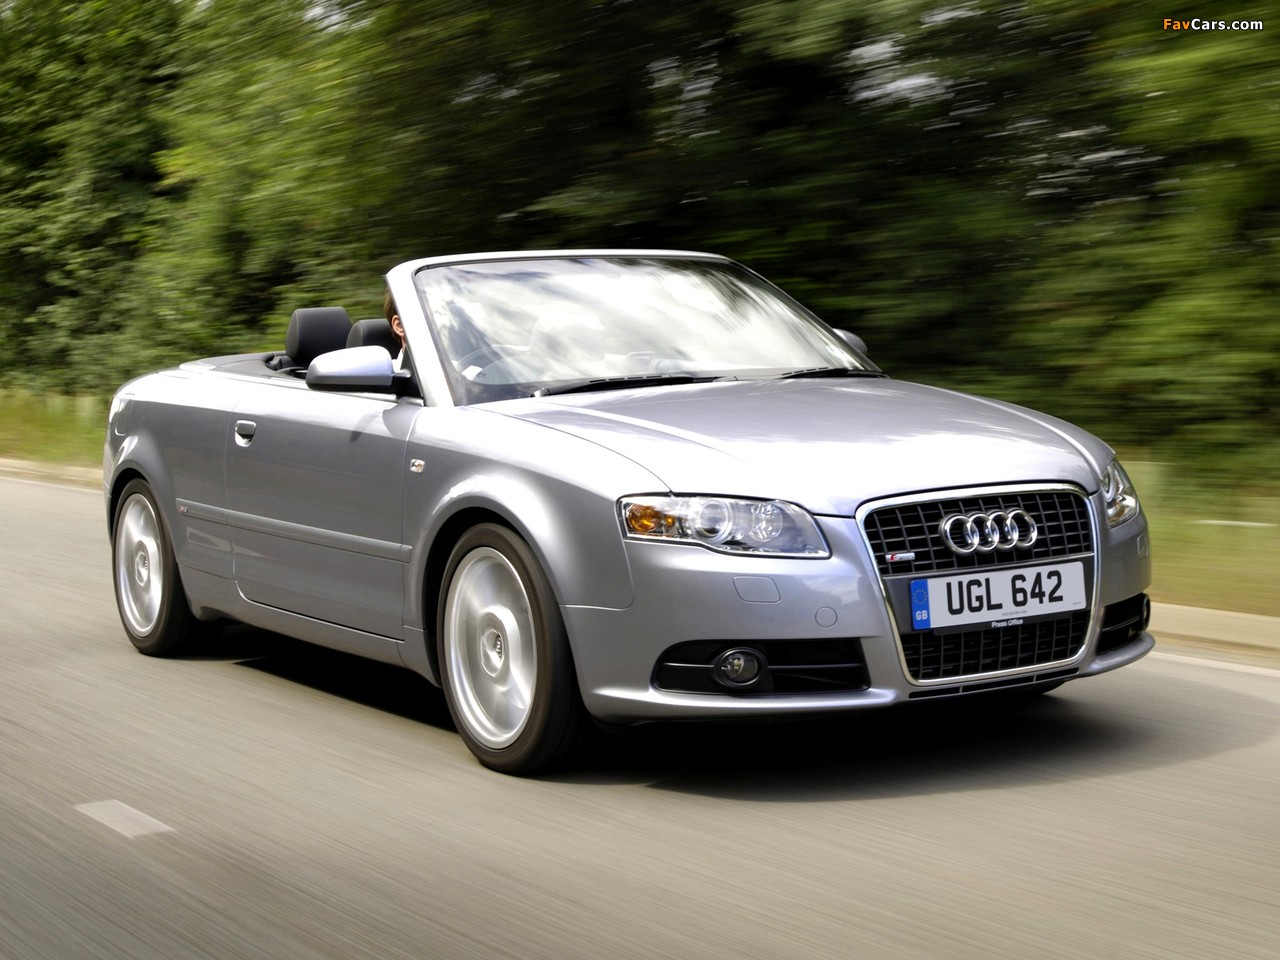 Wallpapers Of Audi A4 2 0t S Line Cabrio Uk Spec B7 8h